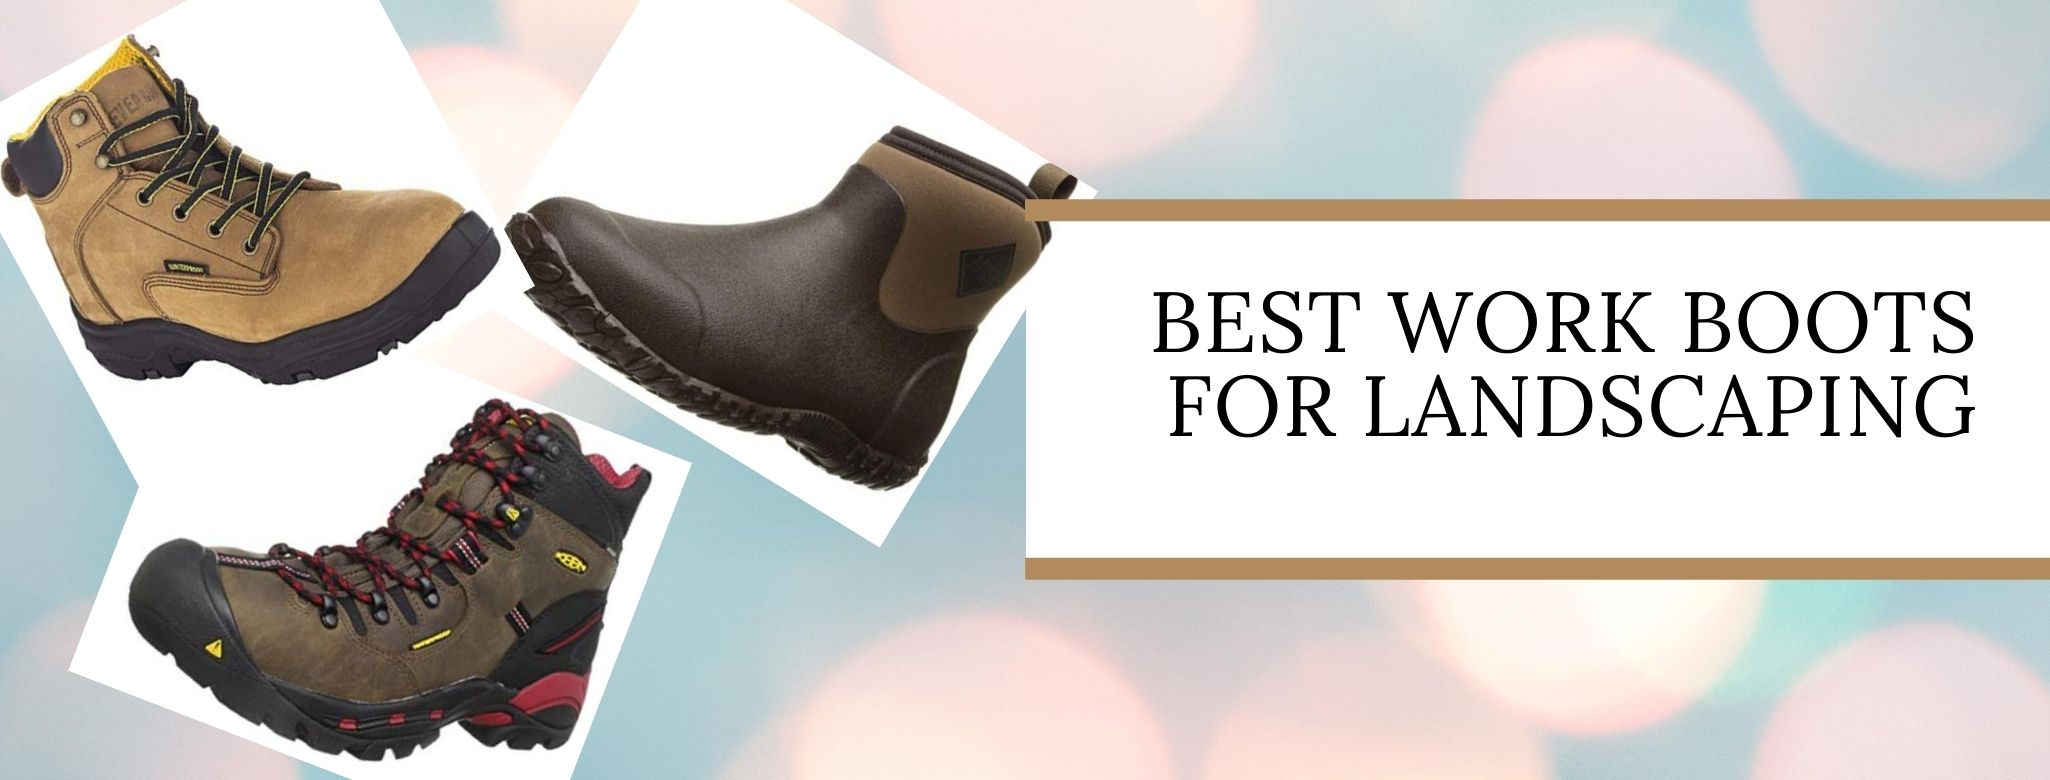 Top-rated work boots